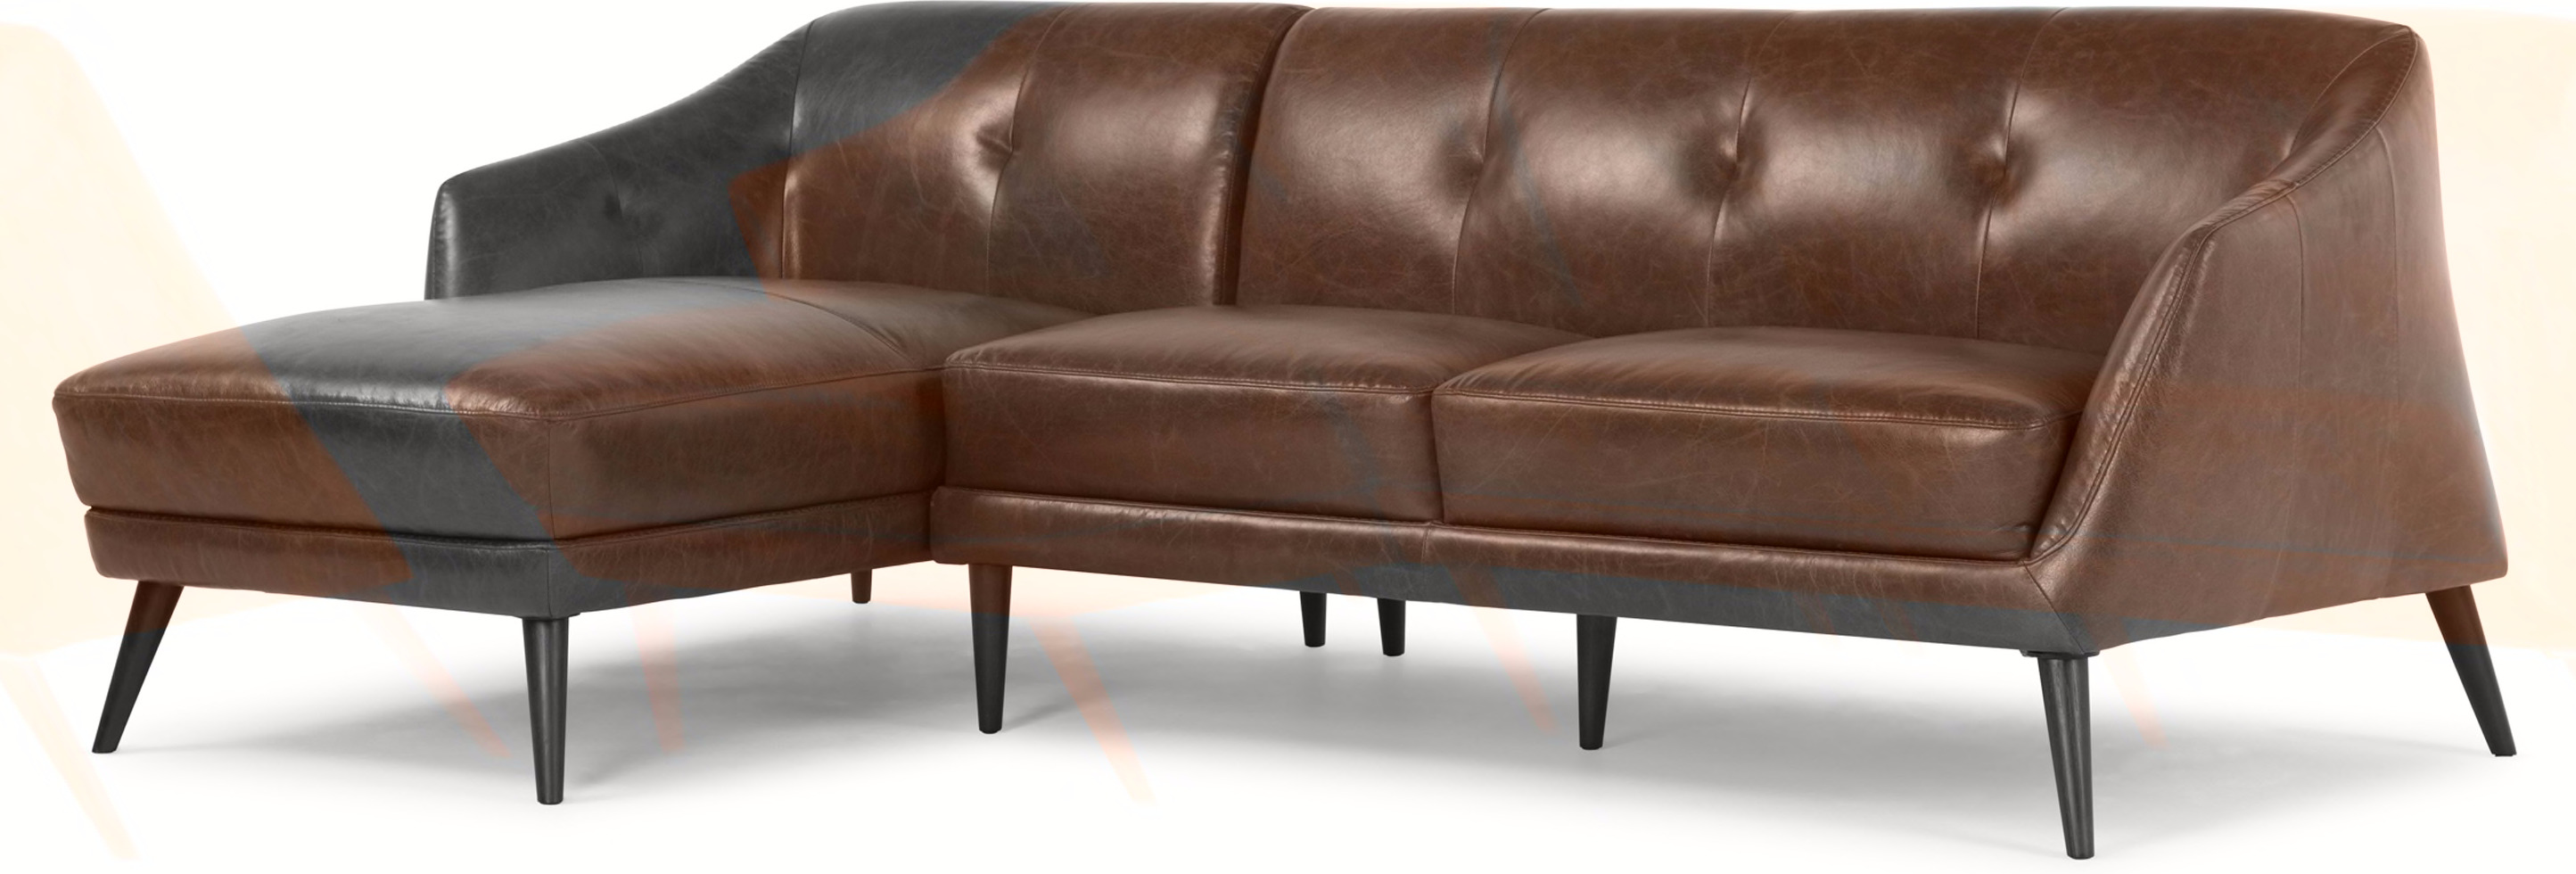 Nevada Left Hand Facing Corner Sofa Antique Cognac Leather